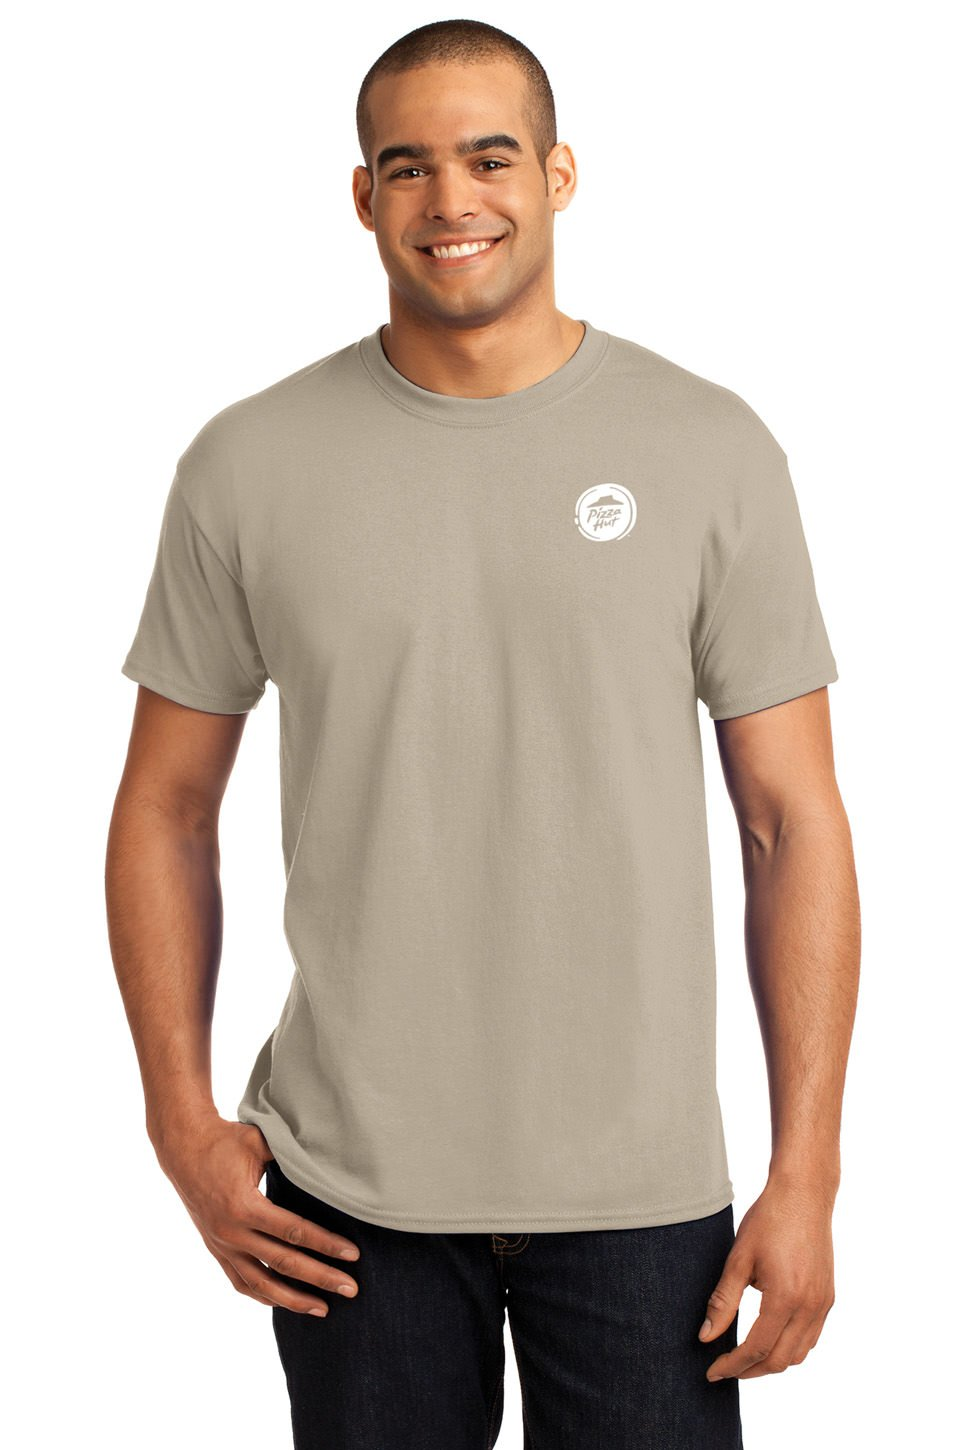 Promo Direct Hanes Cotton/Polyester EcoSmart Short Sleeve Men's T-Shirt - 24 Qty - Promotional Product - Imprinted With Your Company Name, Logo or Message (Sand)